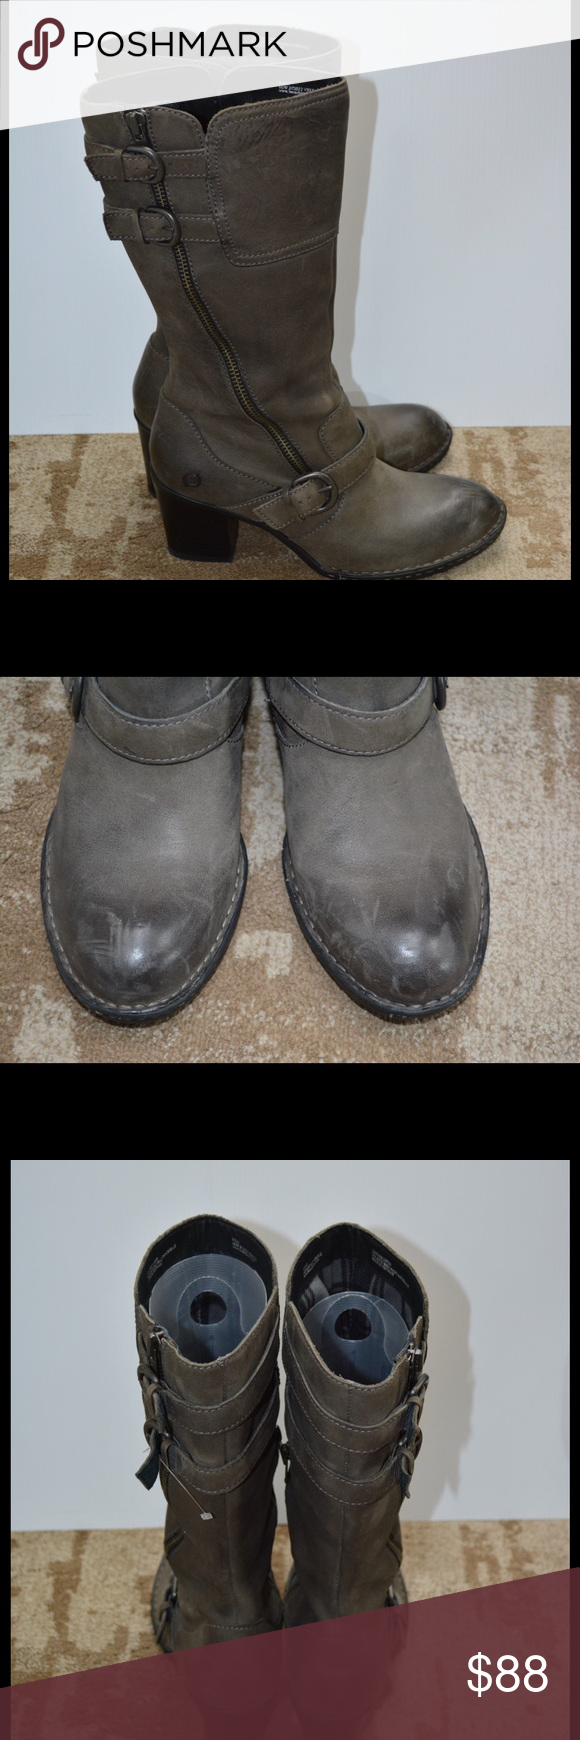 """Gray Born tall boots size 9.5 Excellent condition.  Gray distressed with side buckle accents. 3"""" heel, boot height is 15"""", circumference at top of boot is 16"""". Born Shoes Heeled Boots"""